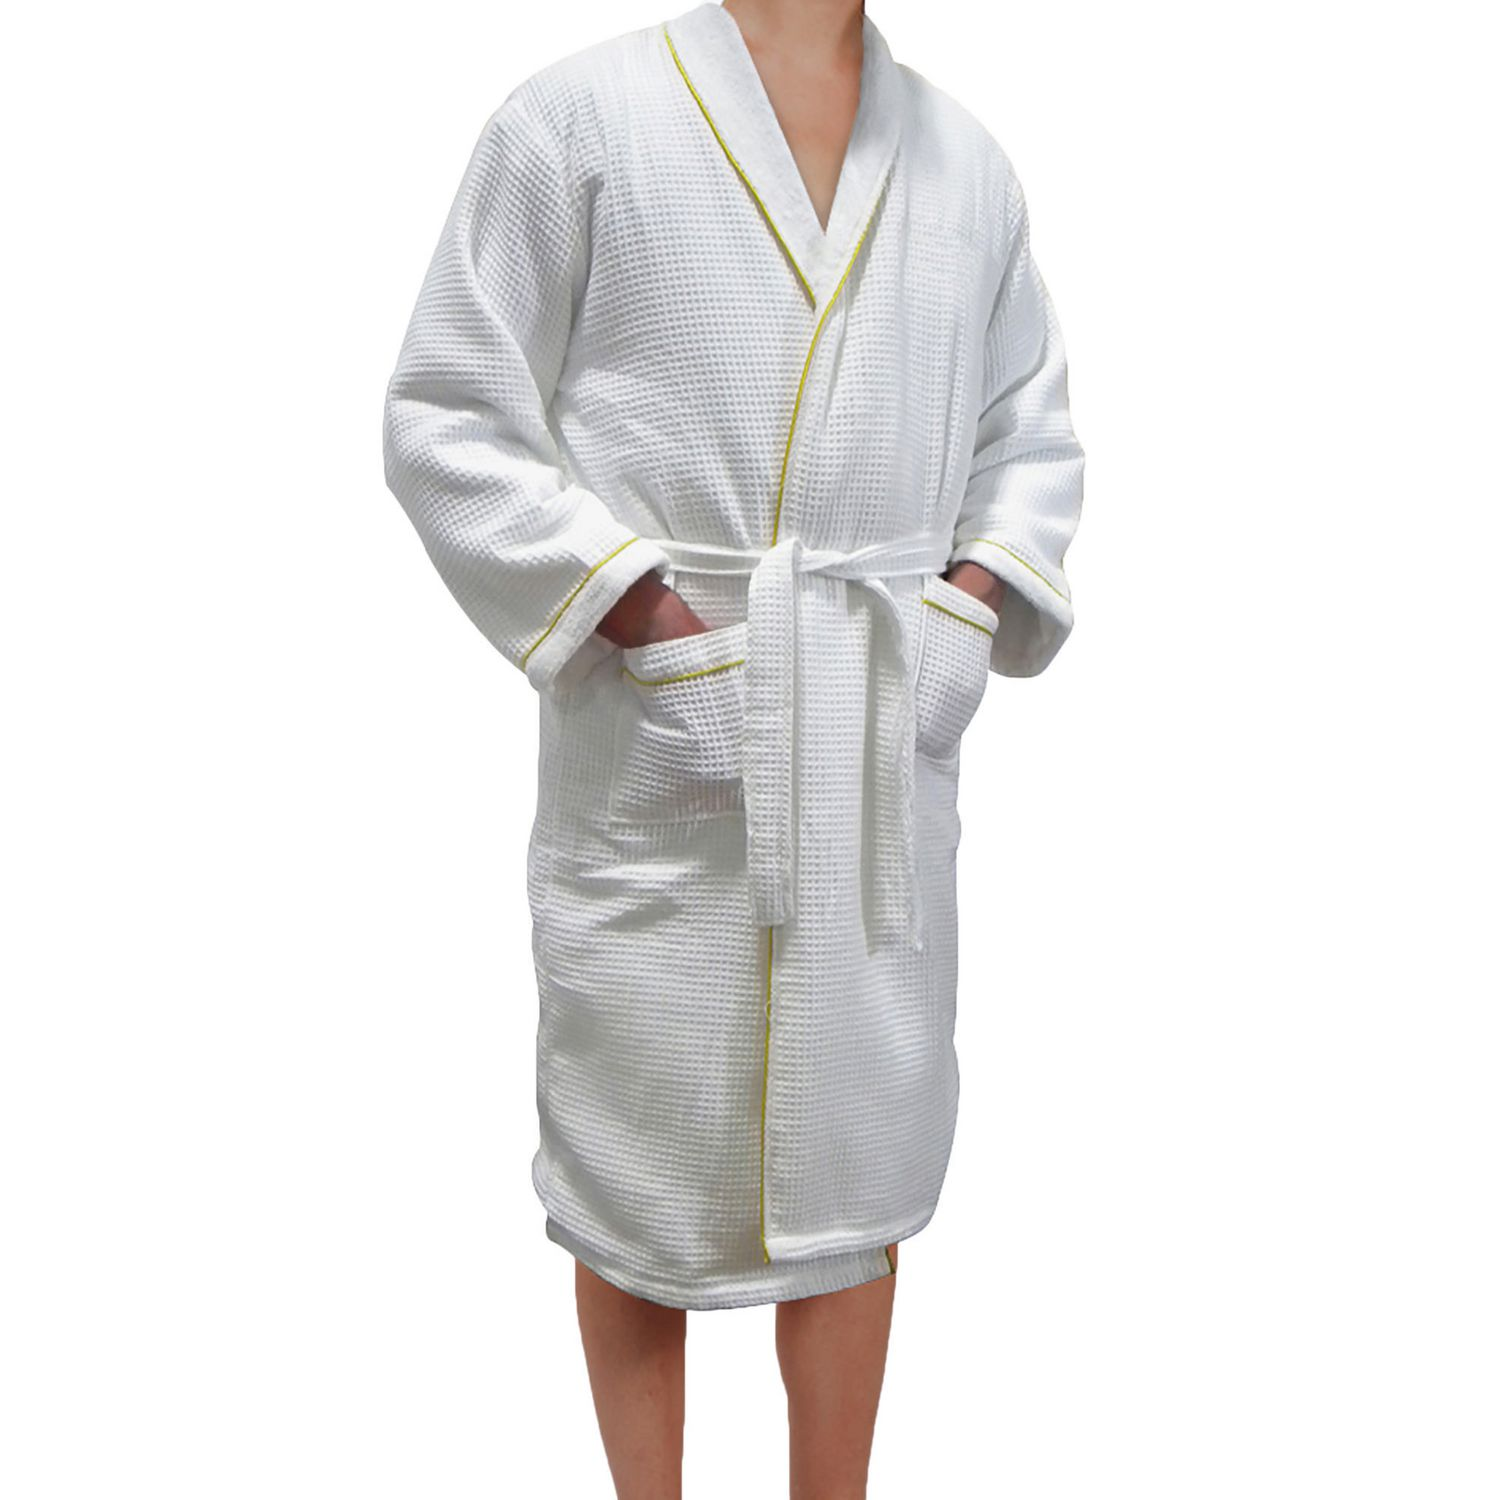 24a9d928f5 Radiant Saunas European Spa   Bath White Waffle Weave Terry Cloth Robe with  Gold Embroidered Trim